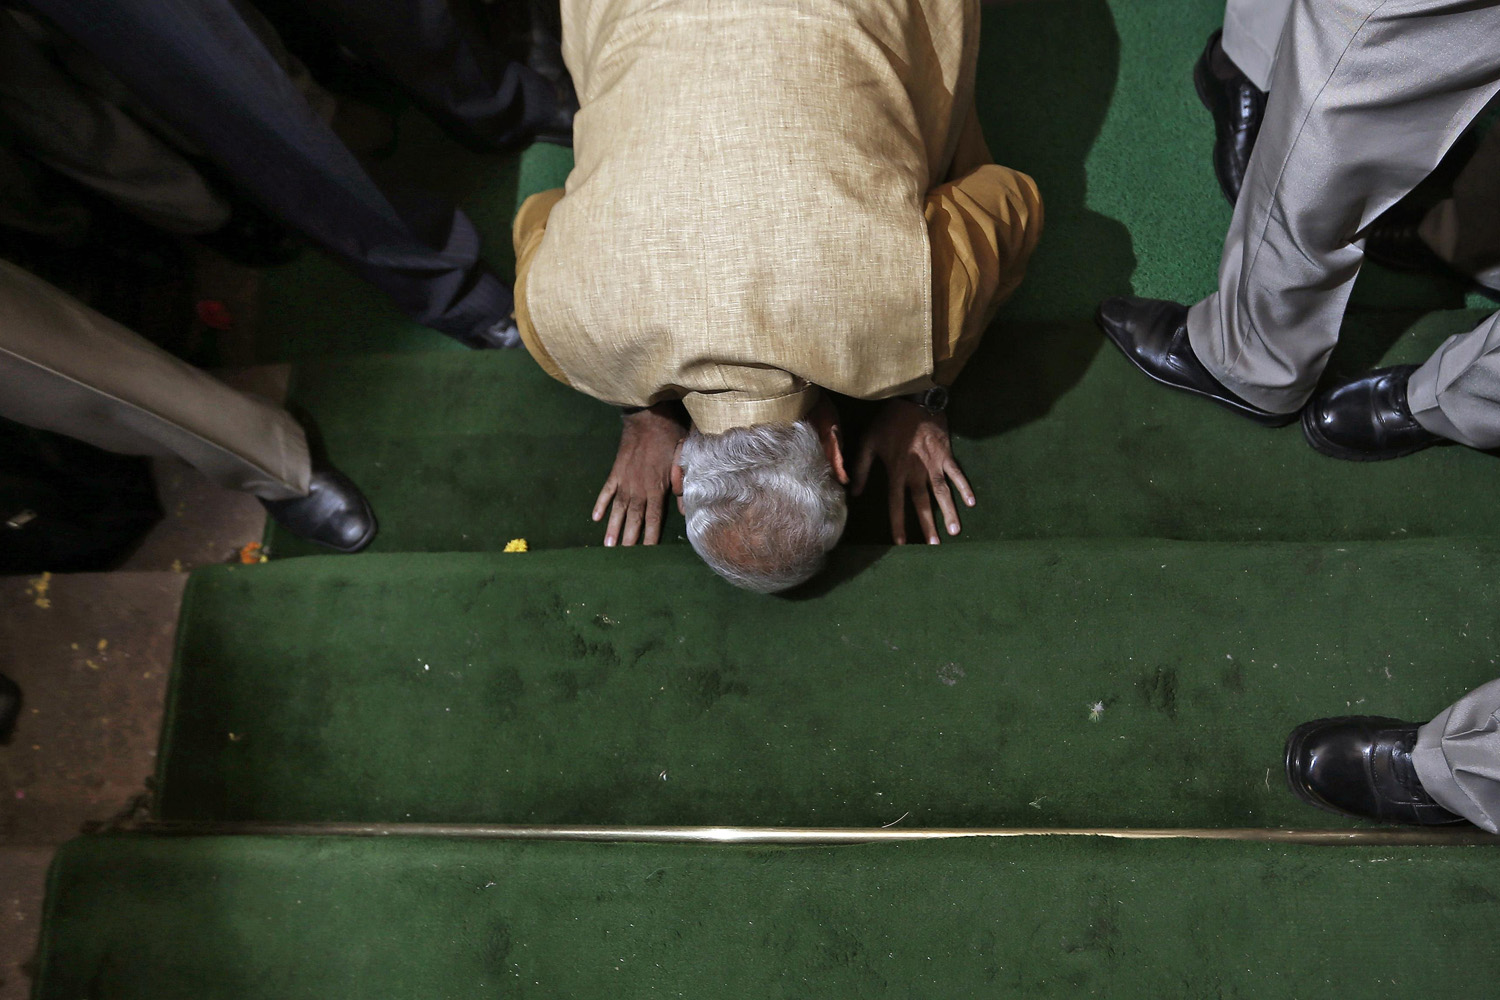 May 20, 2014. Hindu nationalist Narendra Modi, the prime ministerial candidate for India's Bharatiya Janata Party (BJP), bows down in respect at the steps of the parliament house upon his arrival to attend the BJP parliamentary party meeting in New Delhi.